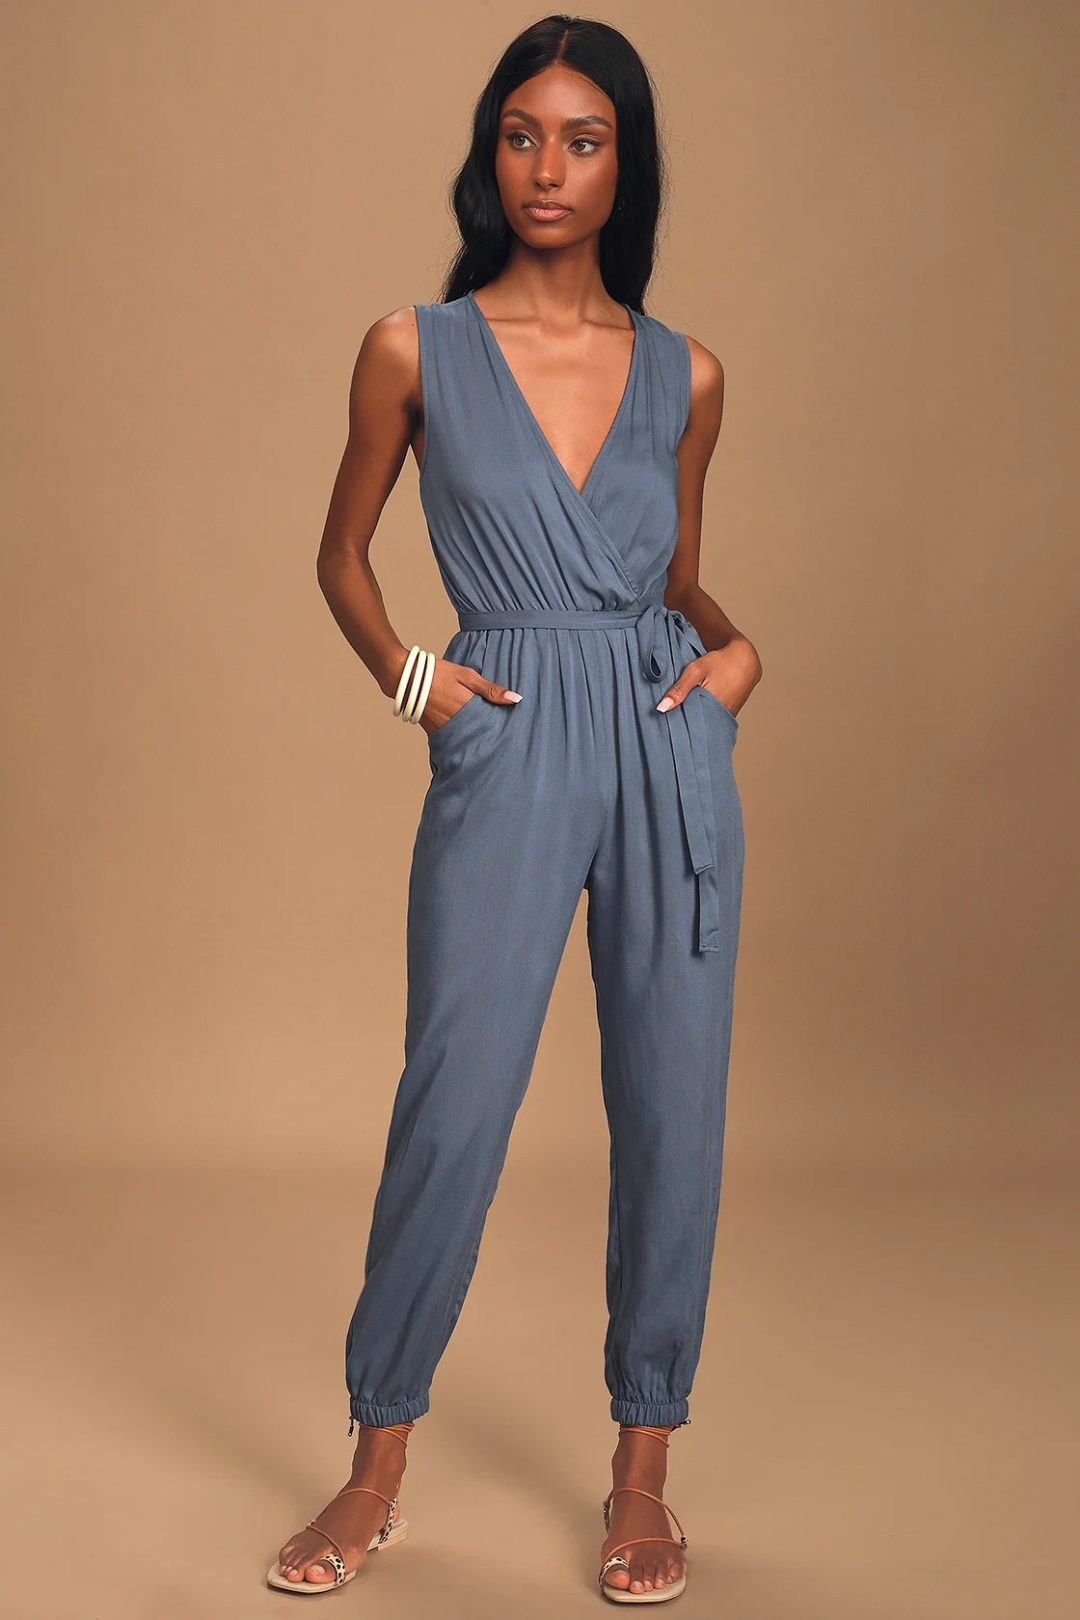 Blue jumpsuit for casual dinner date